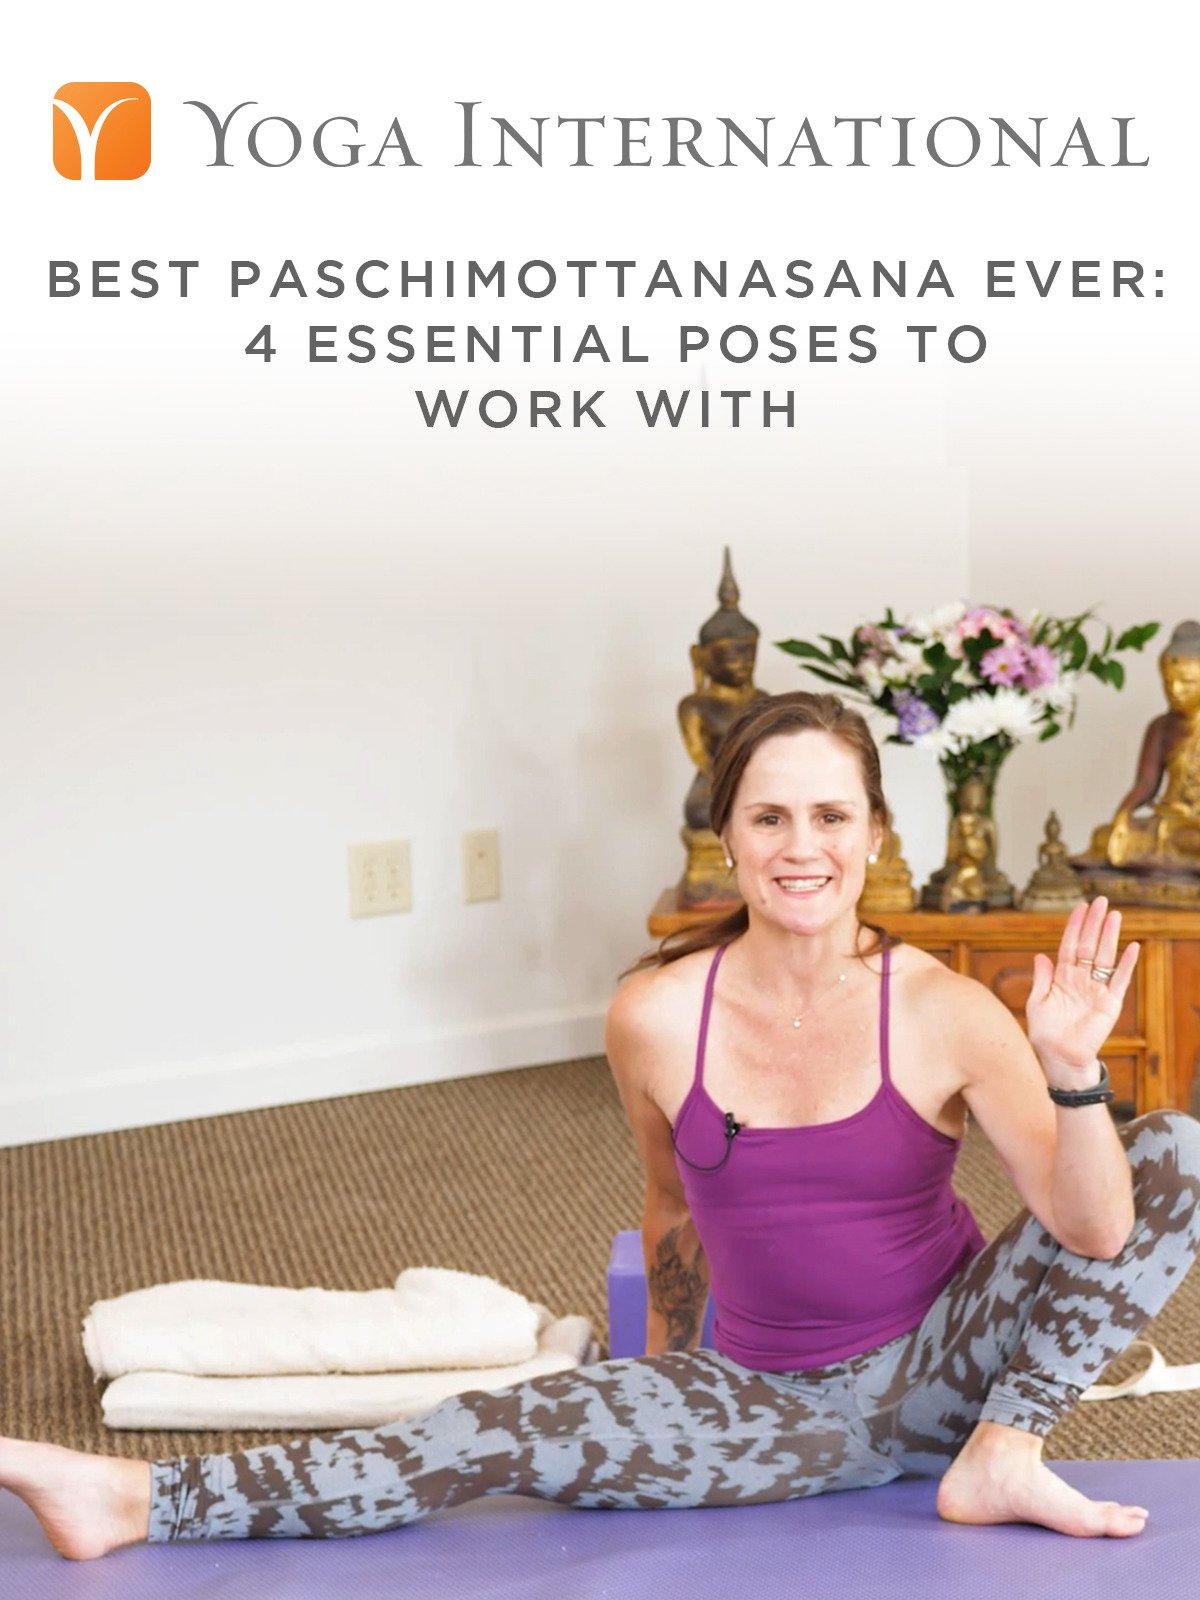 Best Paschimottanasana Ever: 4 Essential Poses to Work With